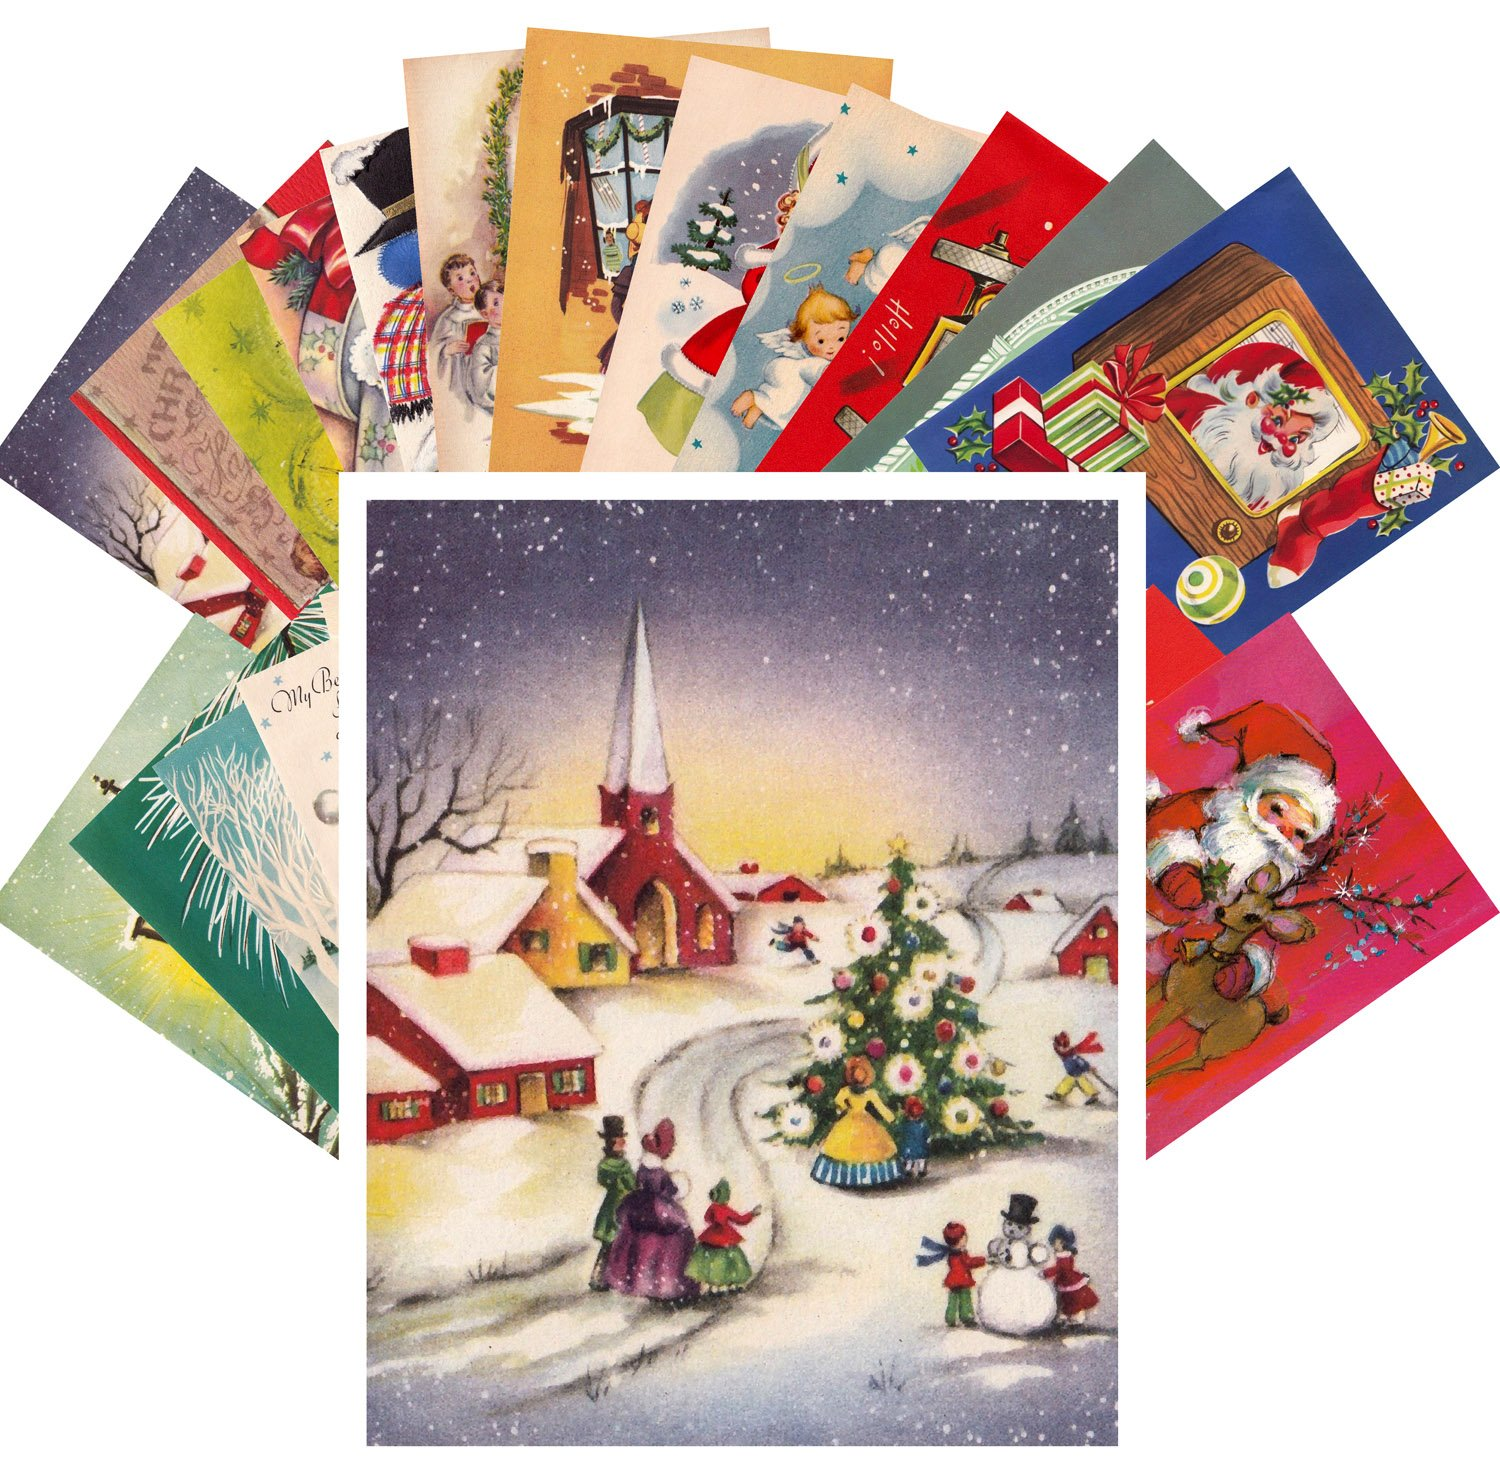 Vintage Christmas Carte Postale 24pcs Christmas Visits and Warm Wishes REPRINT Postcard Pack Noel Pixiluv